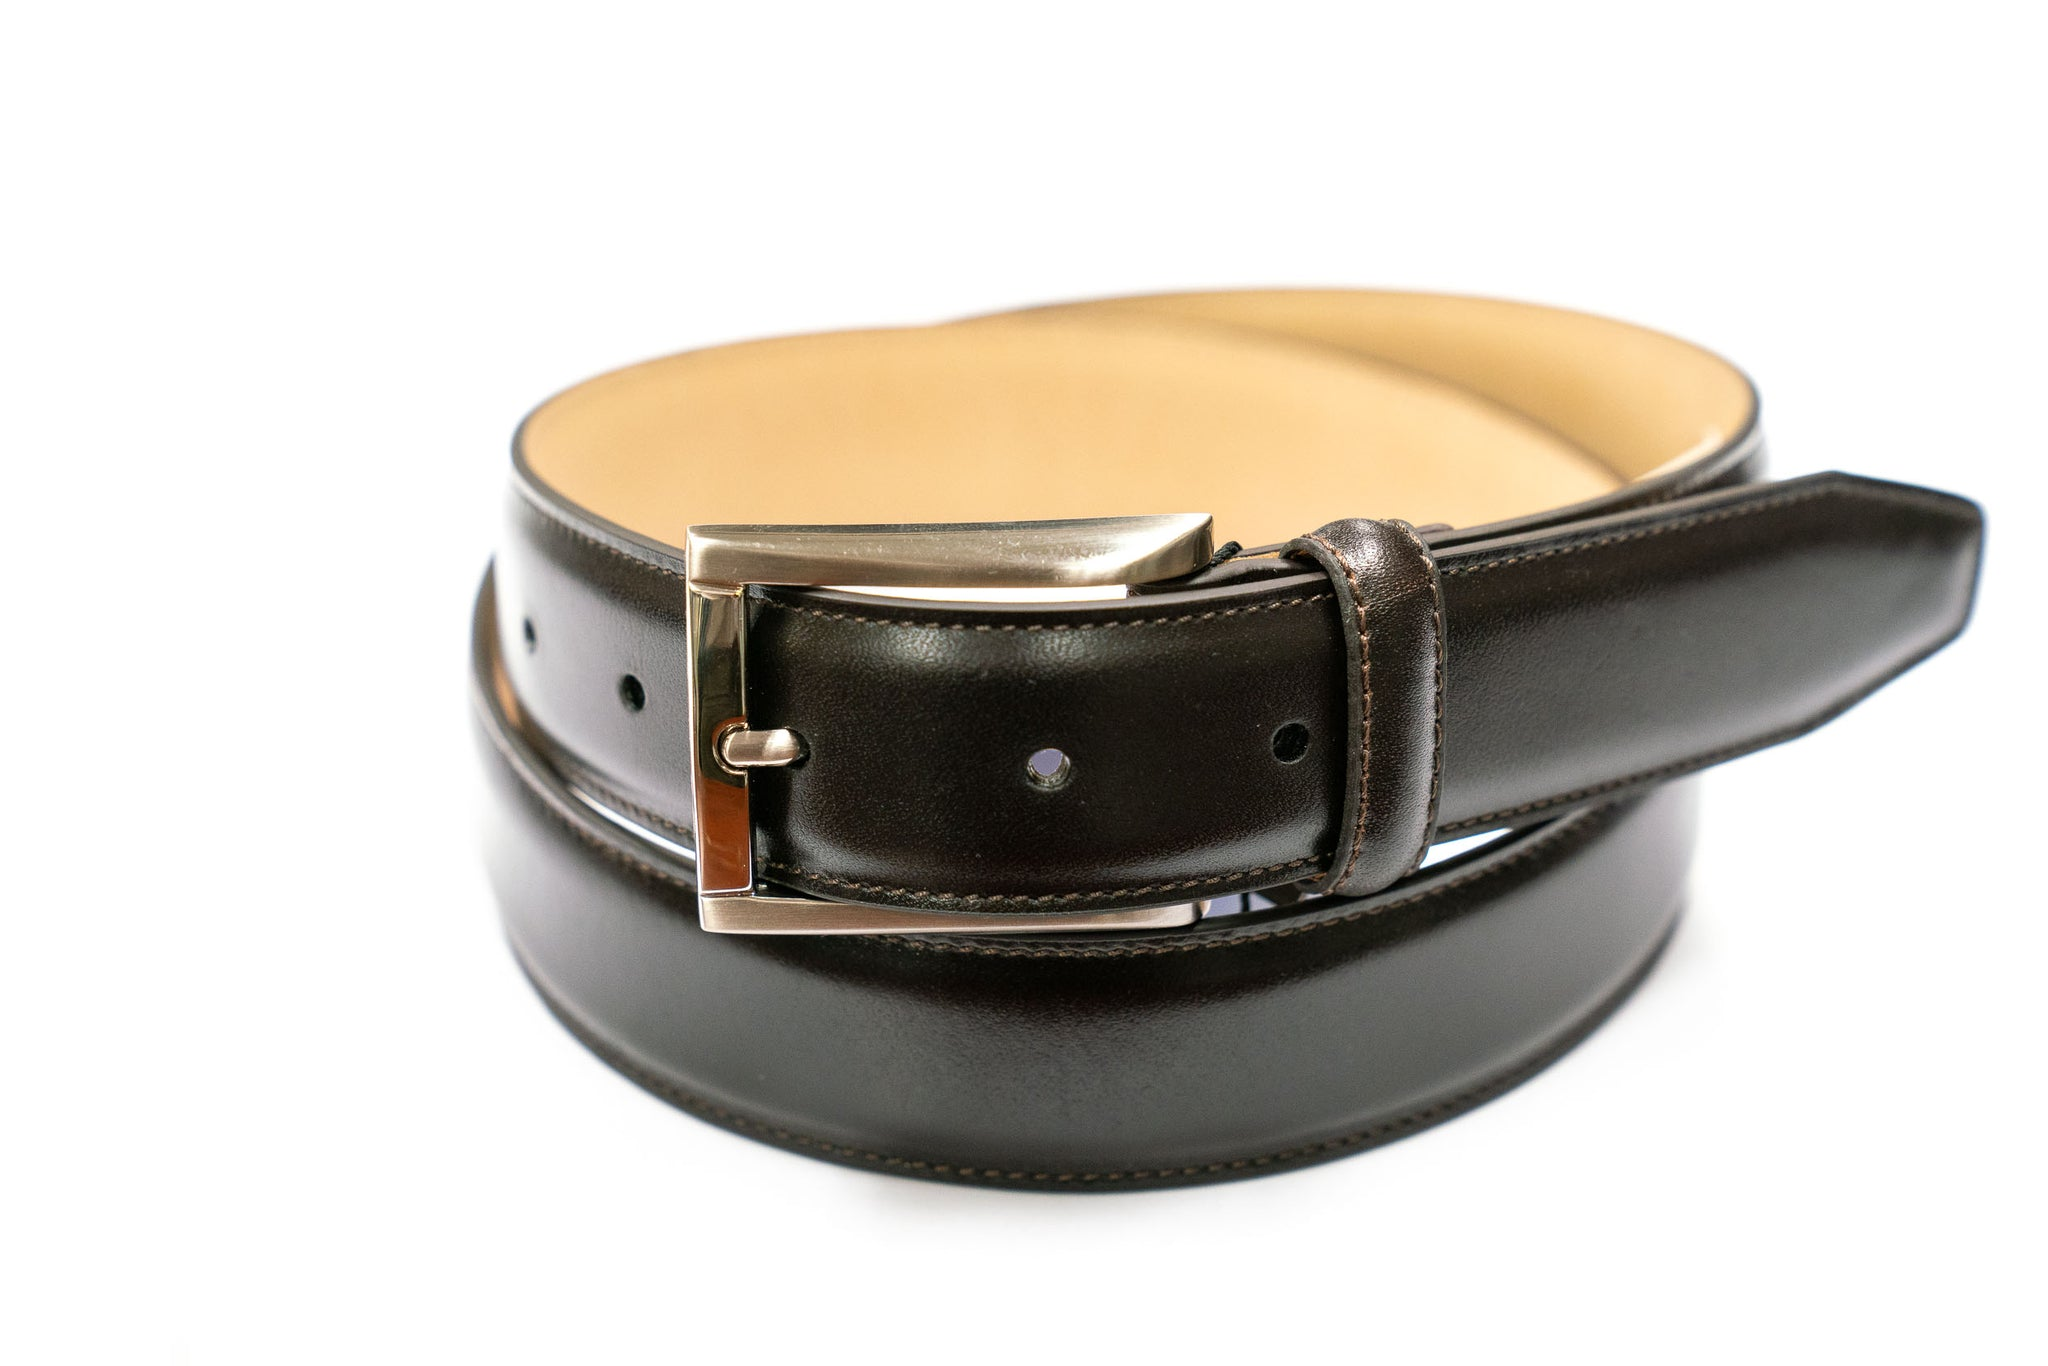 Trafalgar Brown Leather Belt Single Keeper - Rainwater's Men's Clothing and Tuxedo Rental